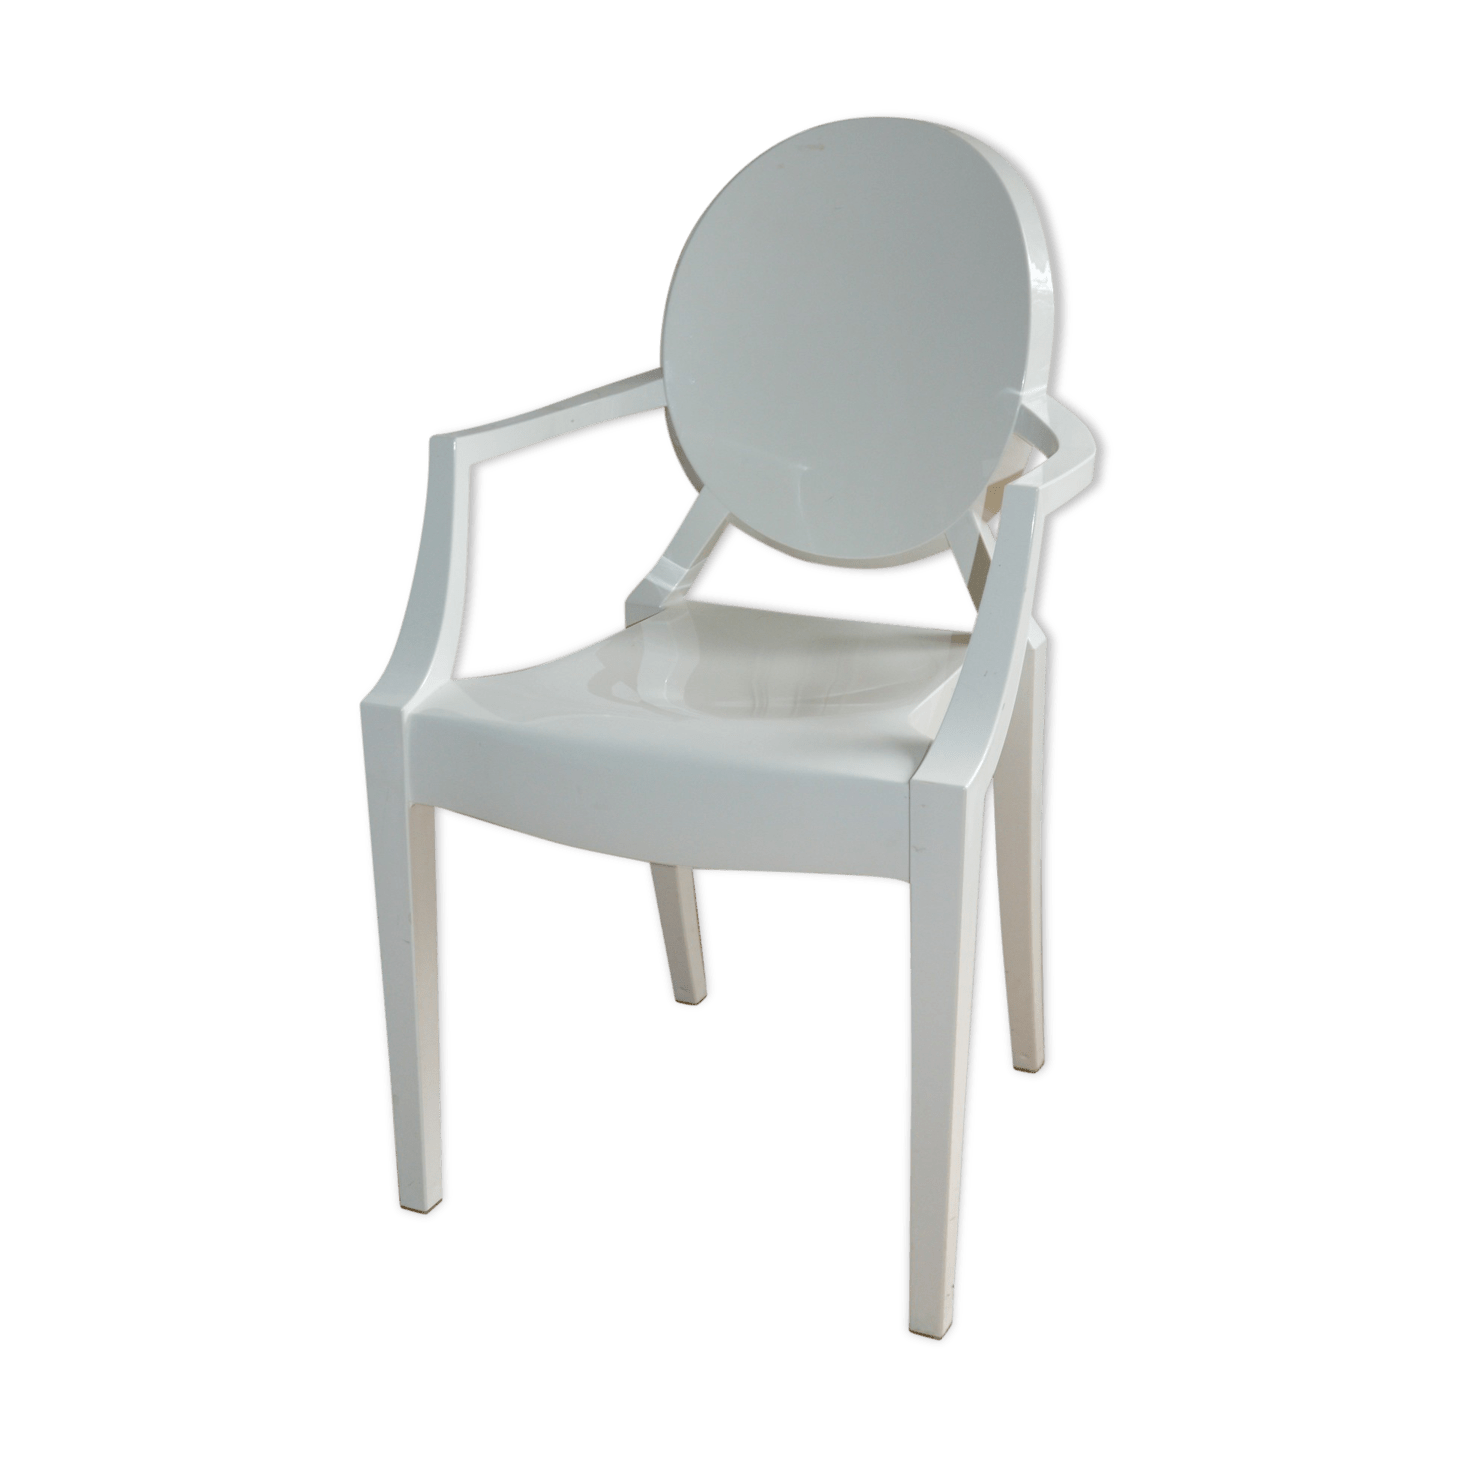 Chaises Louis Ghost Philippe Starck Oveetech